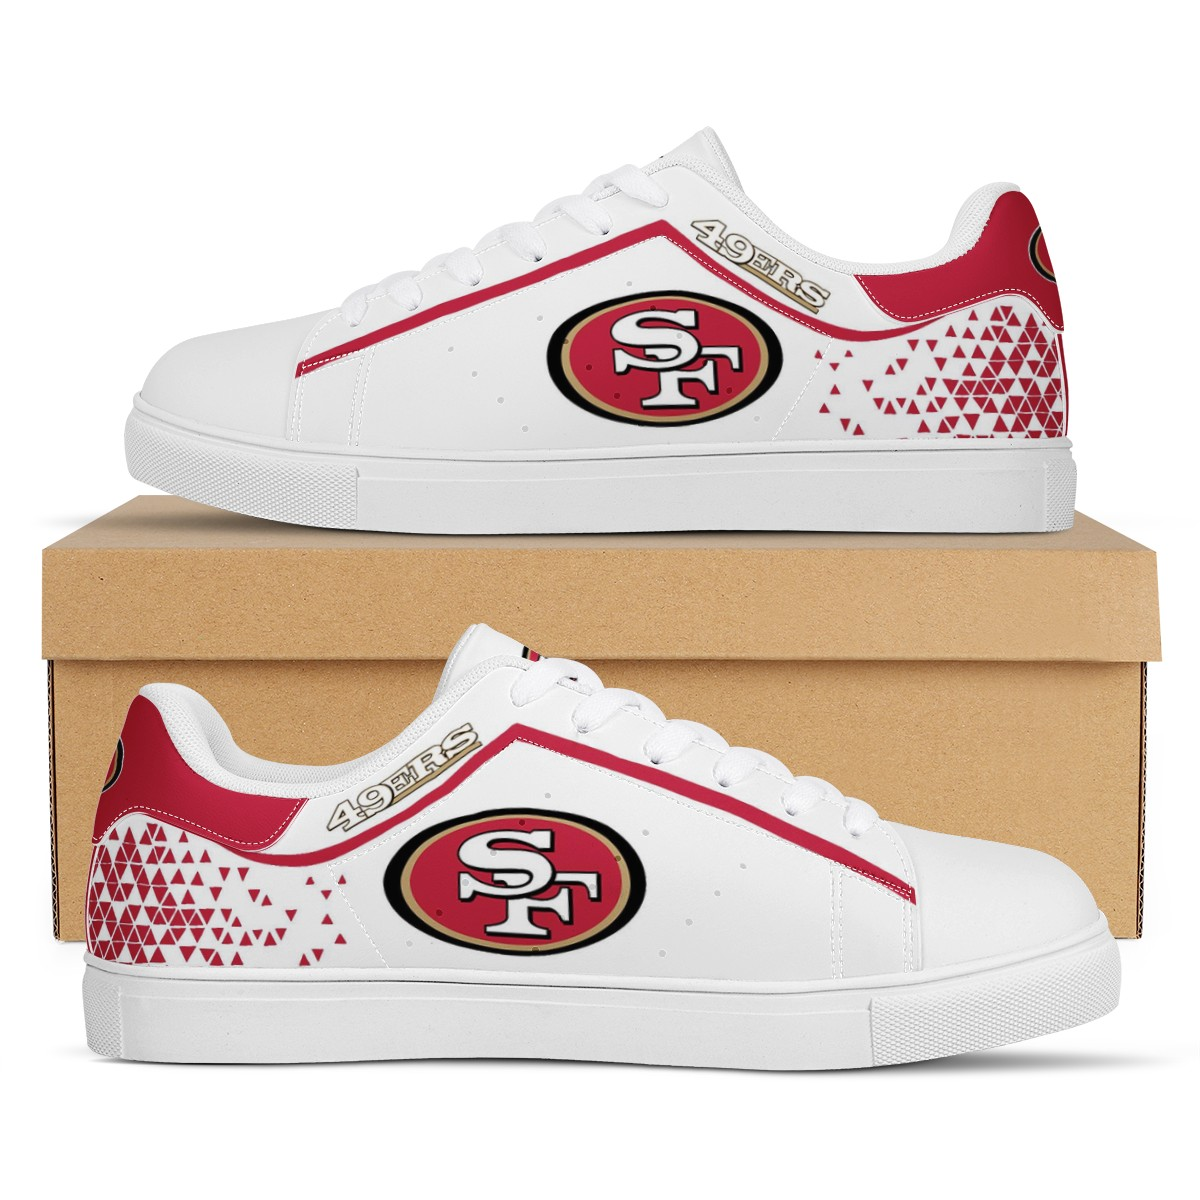 Men's San Francisco 49ers Low Top Leather Sneakers 002